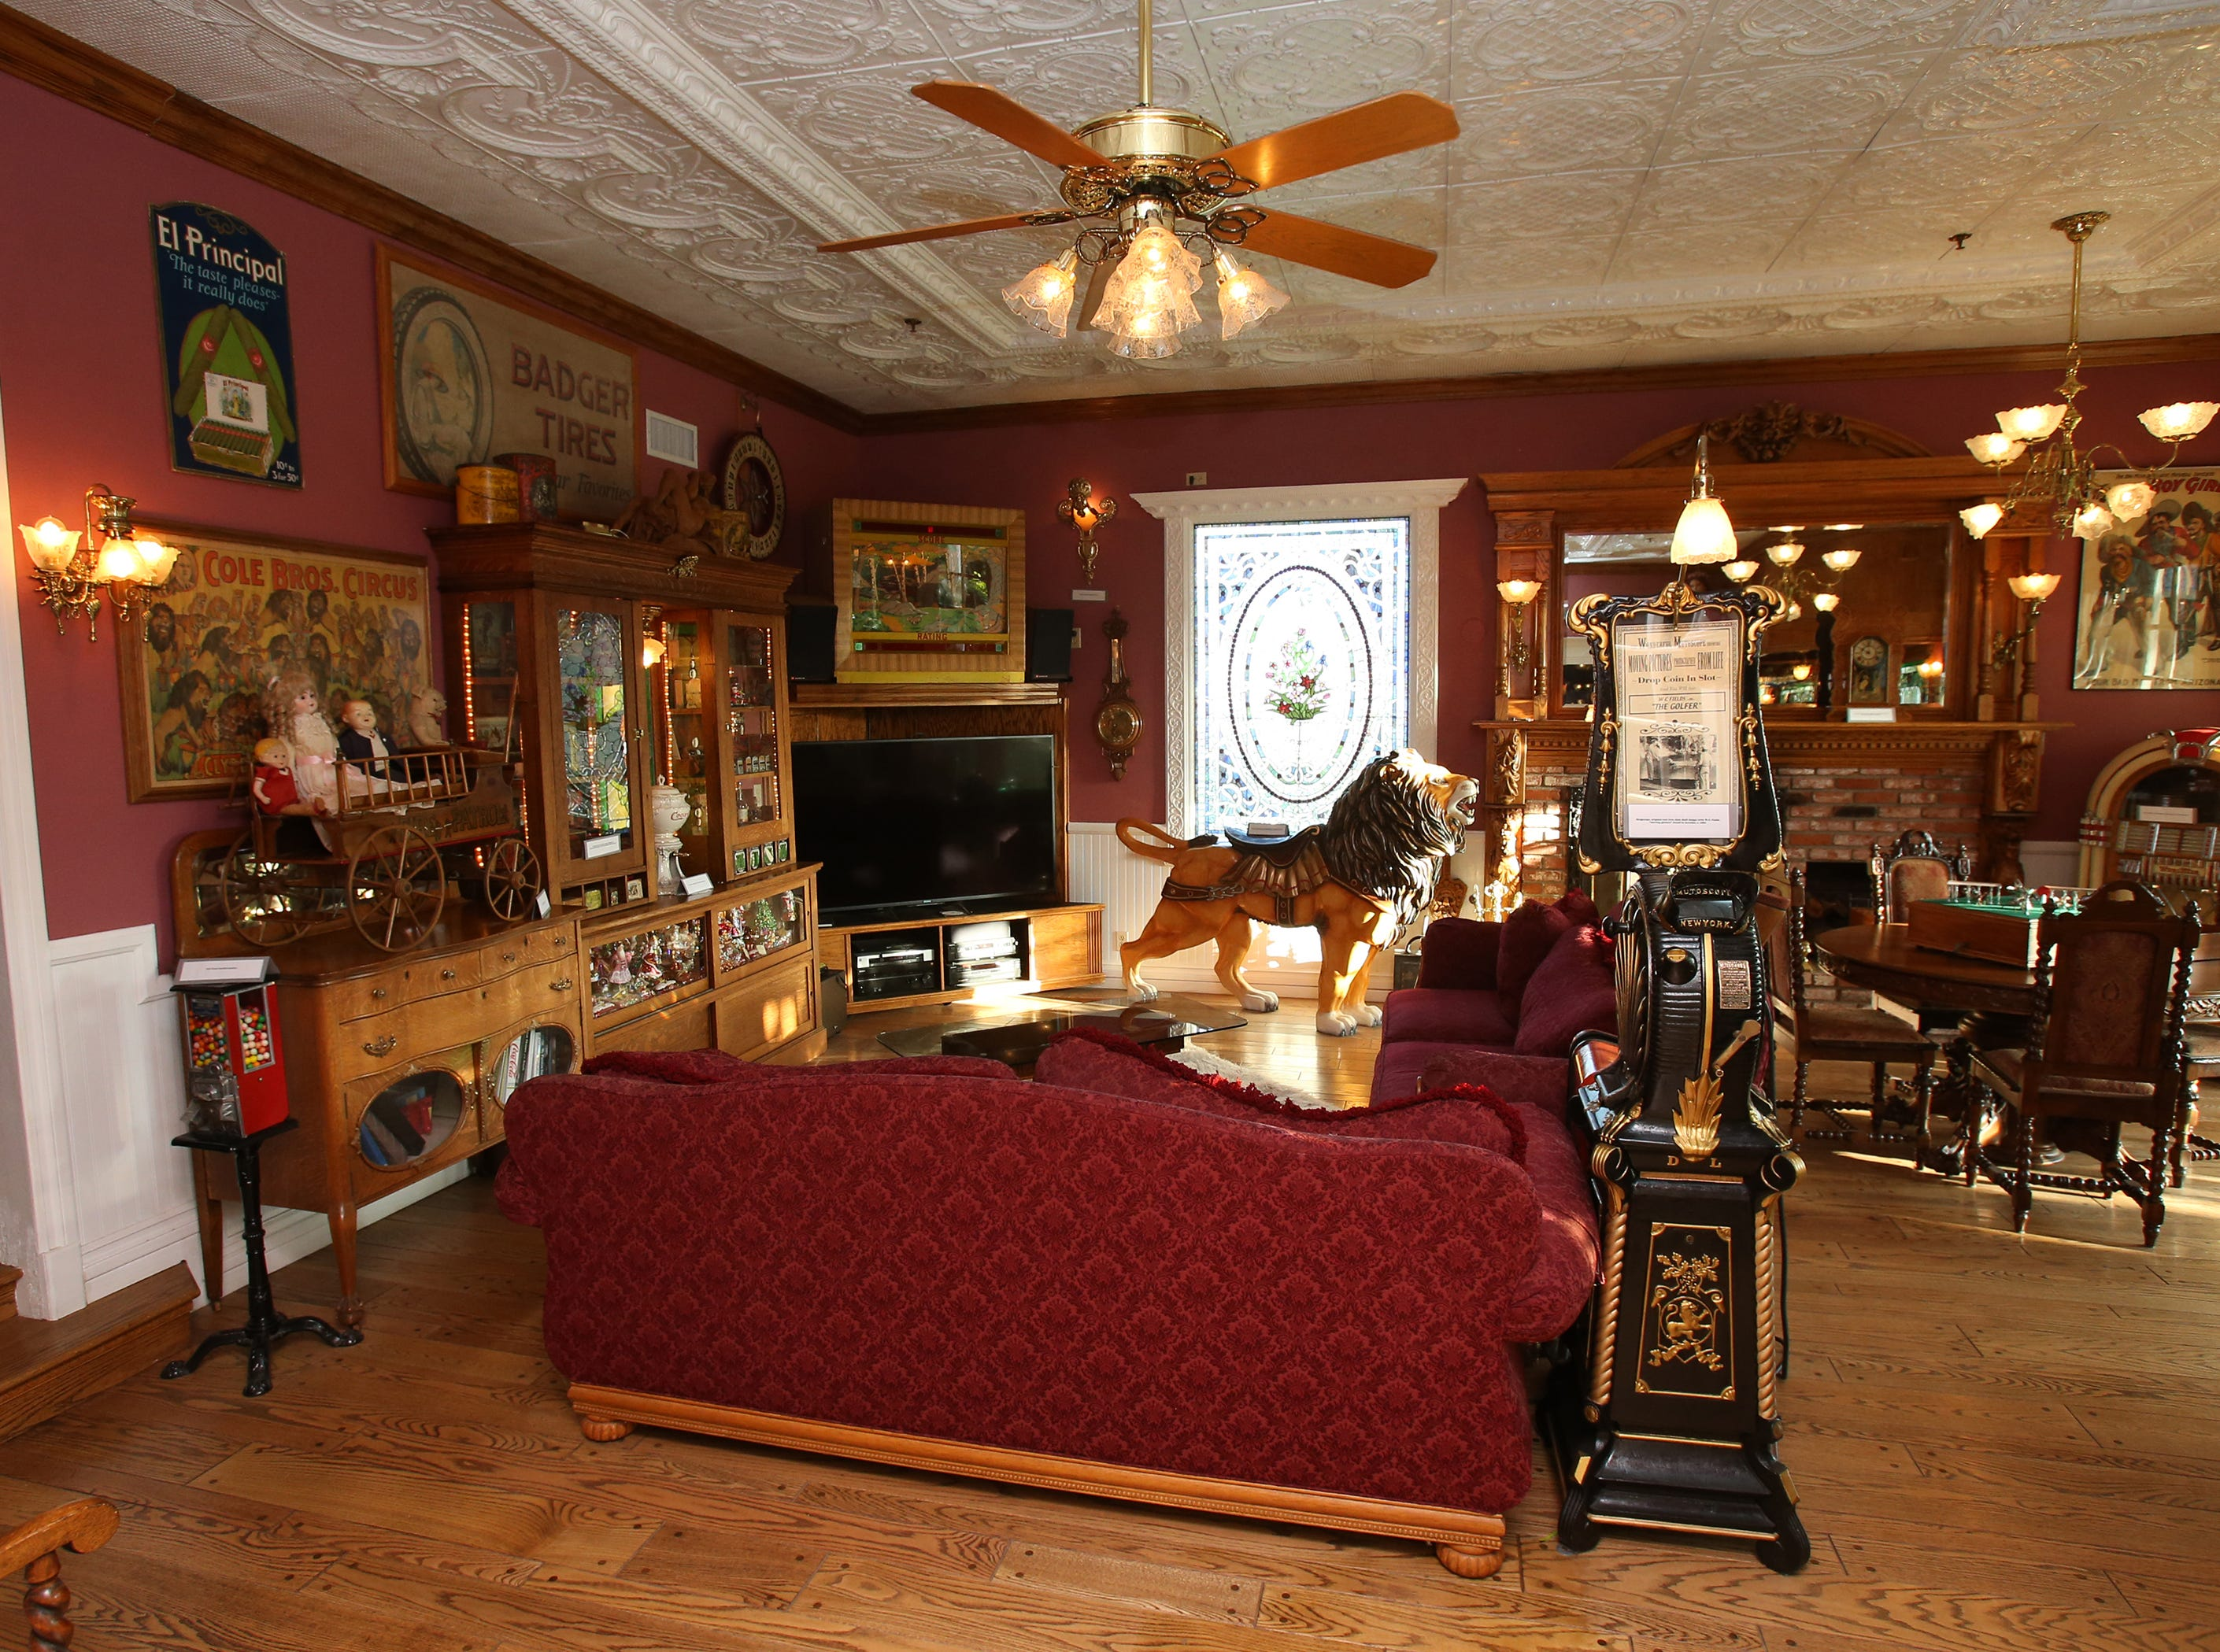 The game room inside the home of Mike and Lorraine Newlon is furnished with antique games and memorabilia, including a carousel lion that was hand-carved from a solid piece of basswood that the couple purchased from the widow of a Newbury Park wood carver.